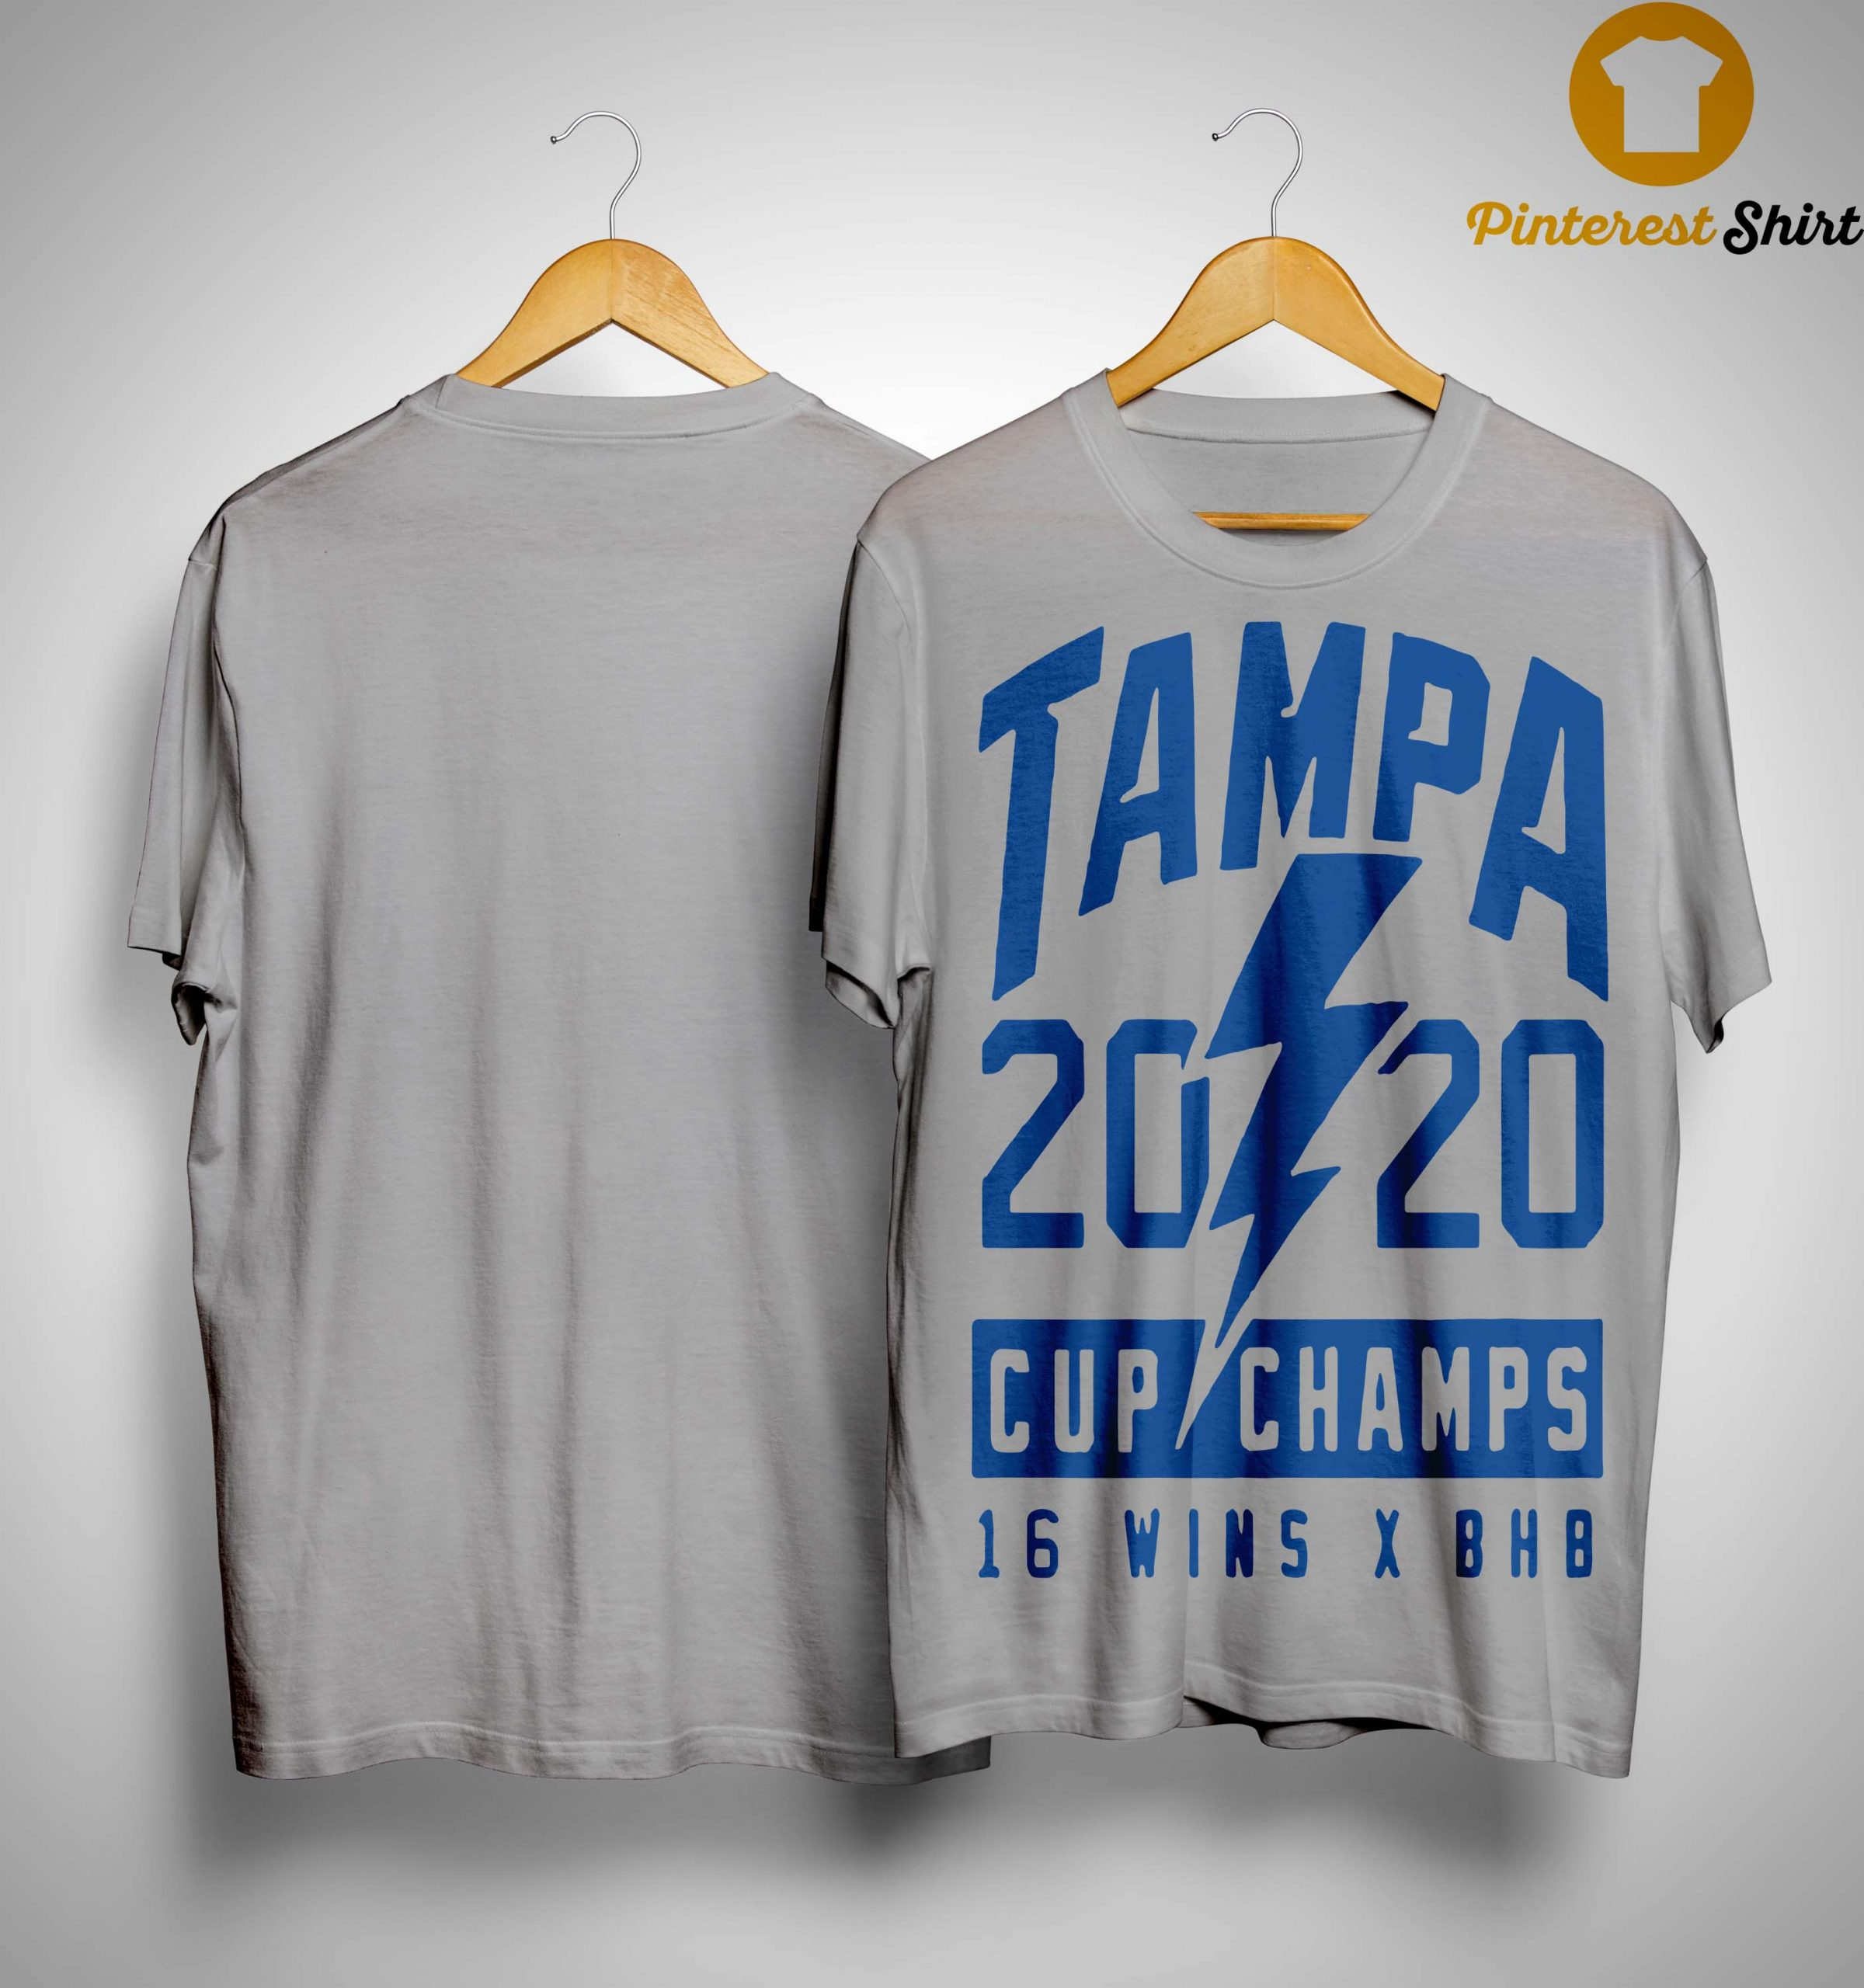 Tampa 2020 Cup Champs 16 Wins X Bhb Shirt